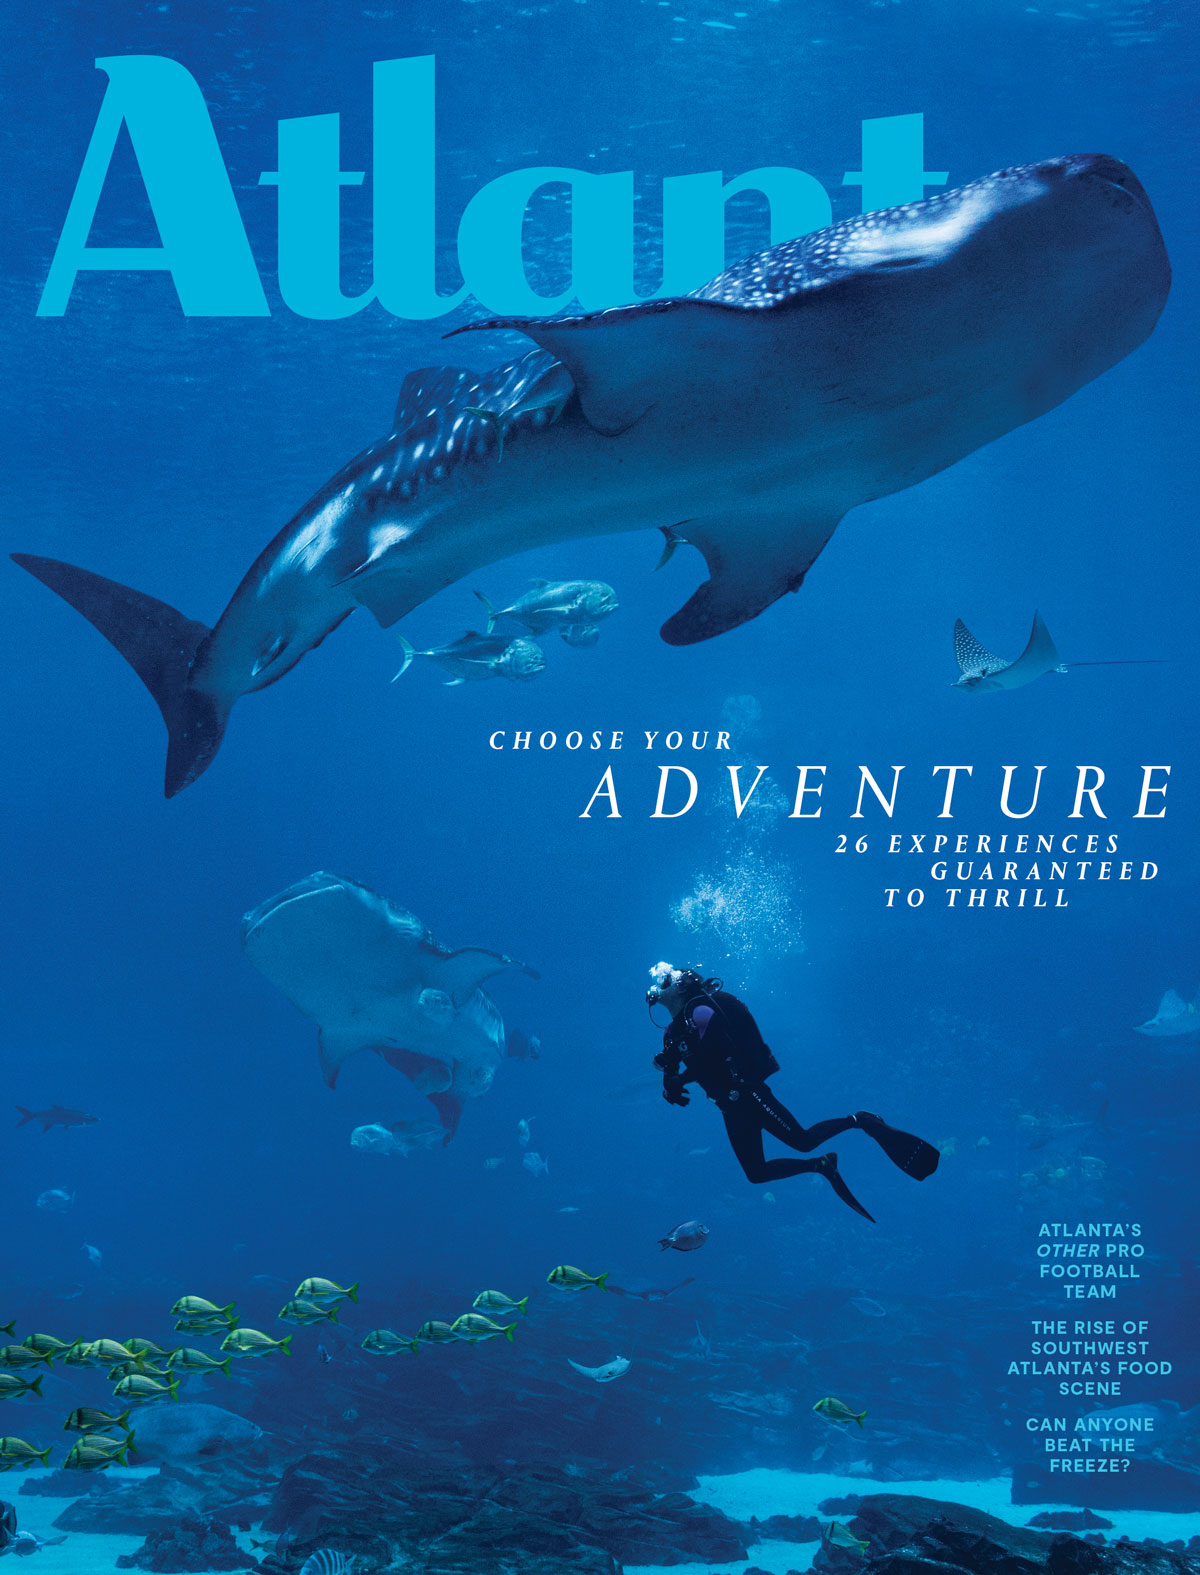 Atlanta Magazine May 2019 cover - Choose your Adventure